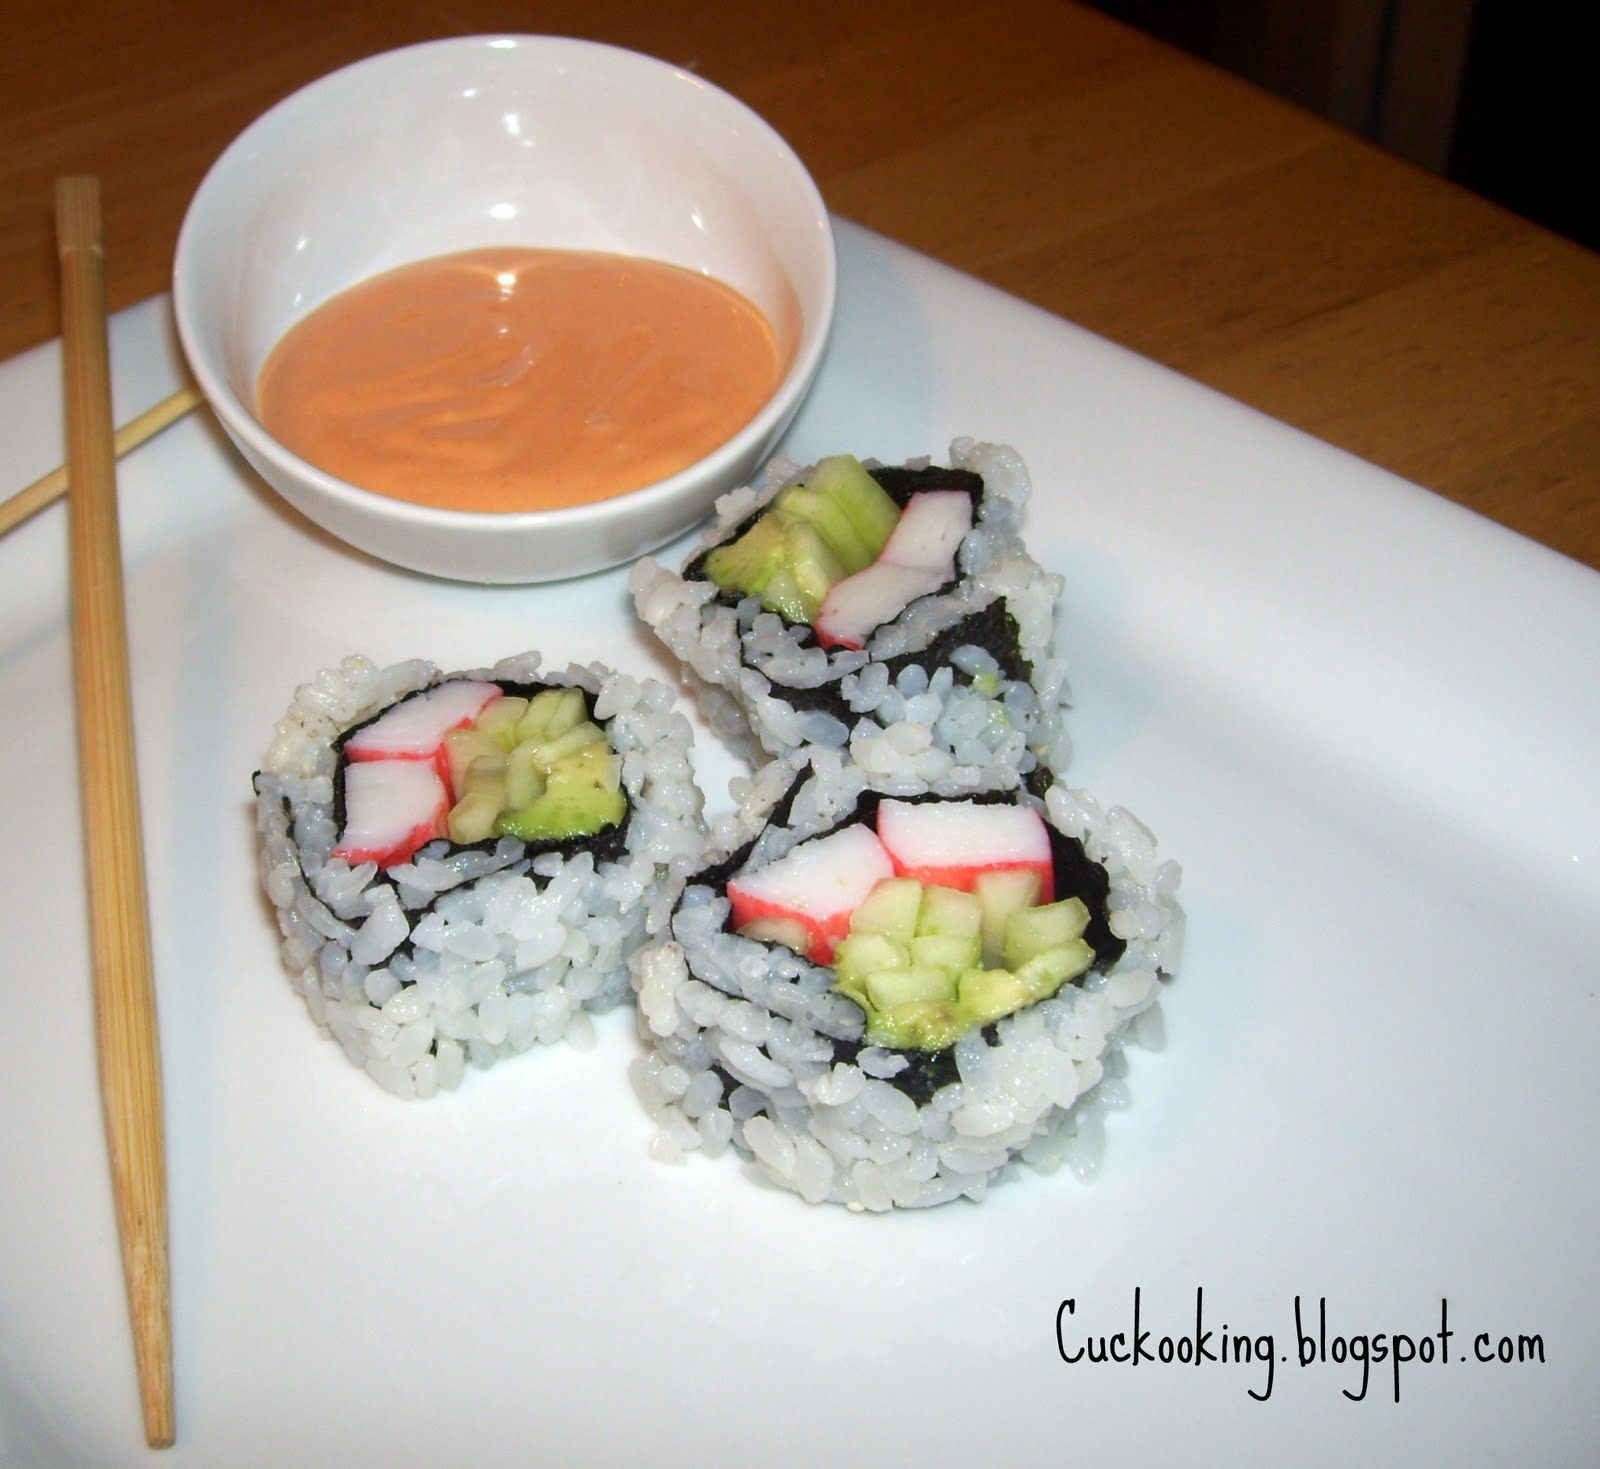 Cooking Creation: Inside-Out Philadelphia Sushi Roll with Spicy Sauce